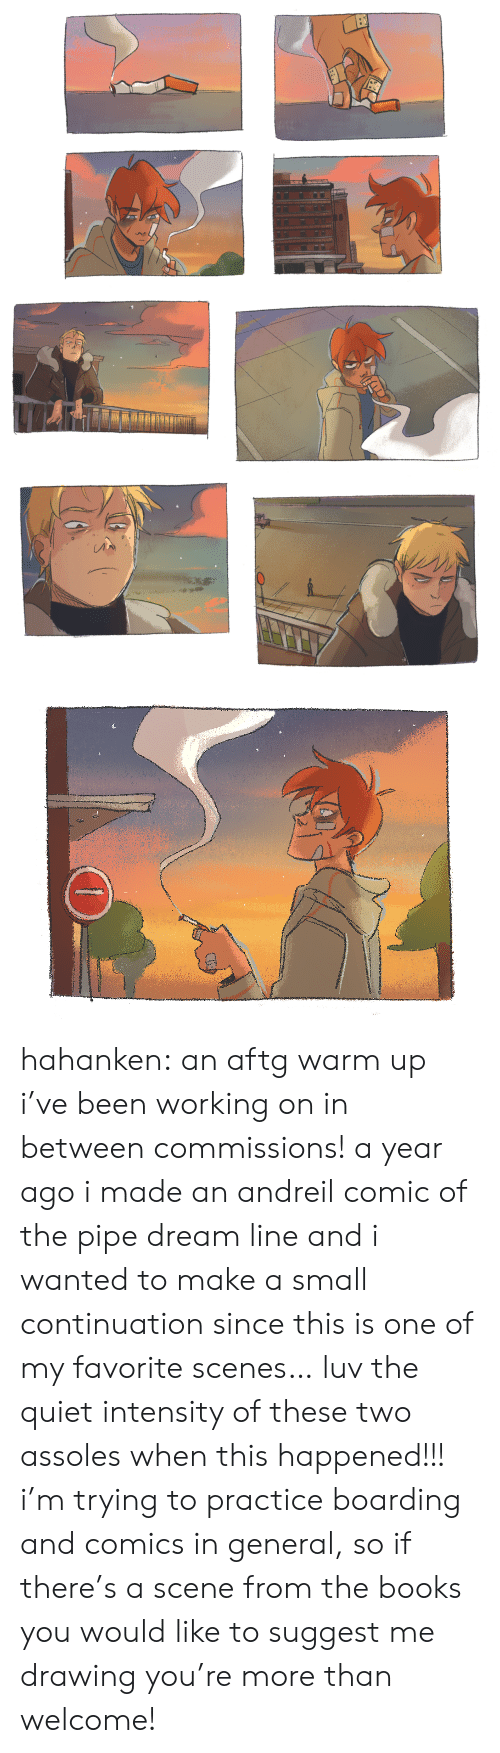 Books, Target, and Tumblr: hahanken: an aftg warm up i've been working on in between commissions! a year ago i made an andreil comic of the pipe dream line and i wanted to make a small continuation since this is one of my favorite scenes… luv the quiet intensity of these two assoles when this happened!!! i'mtrying to practice boarding and comics in general, so if there's a scenefrom the books you would like to suggest me drawing you're more than welcome!